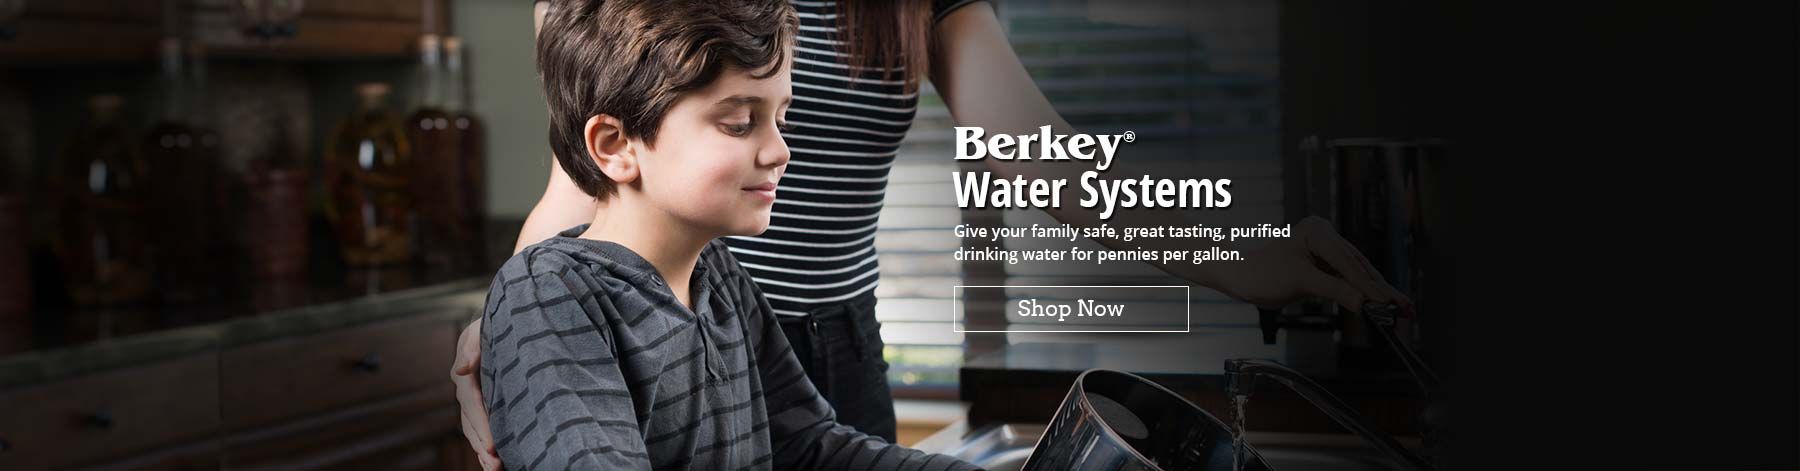 Berkey Water Systems - Give your family safe, great tasting, purified drinking water for pennies per gallon. Click slide to shop now